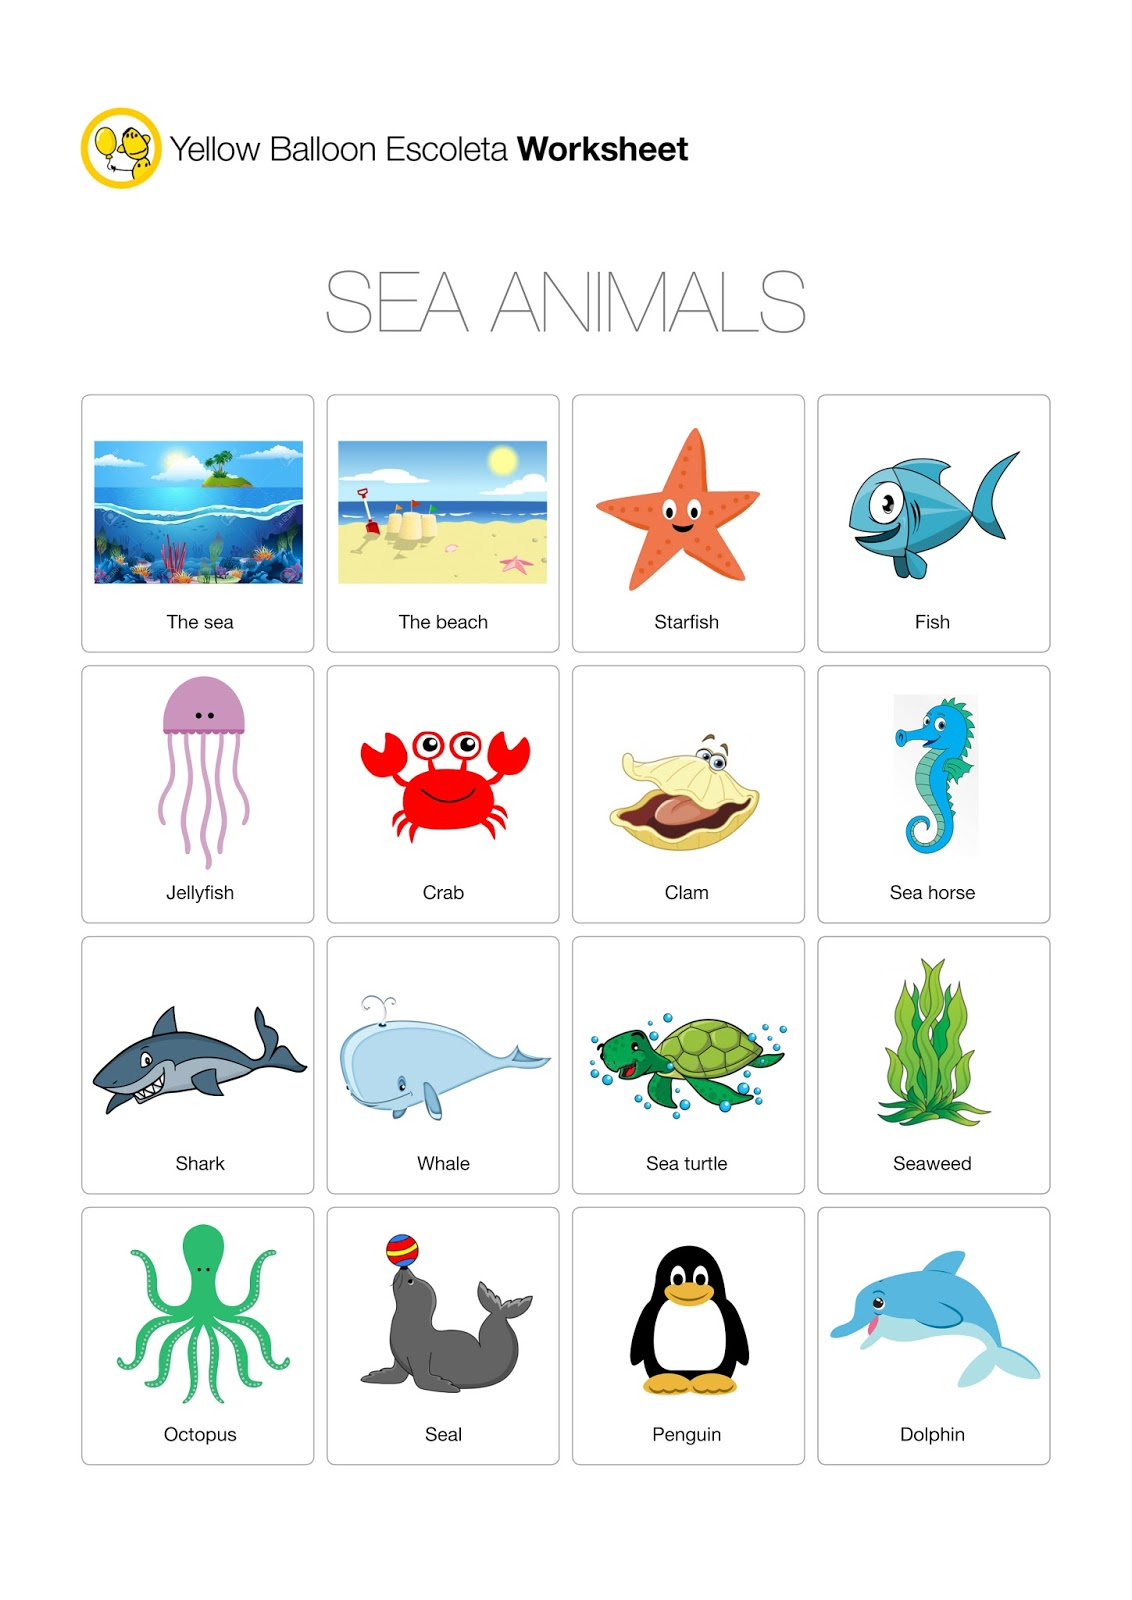 Yellow Balloon Escoleta Sea Animals Worksheet